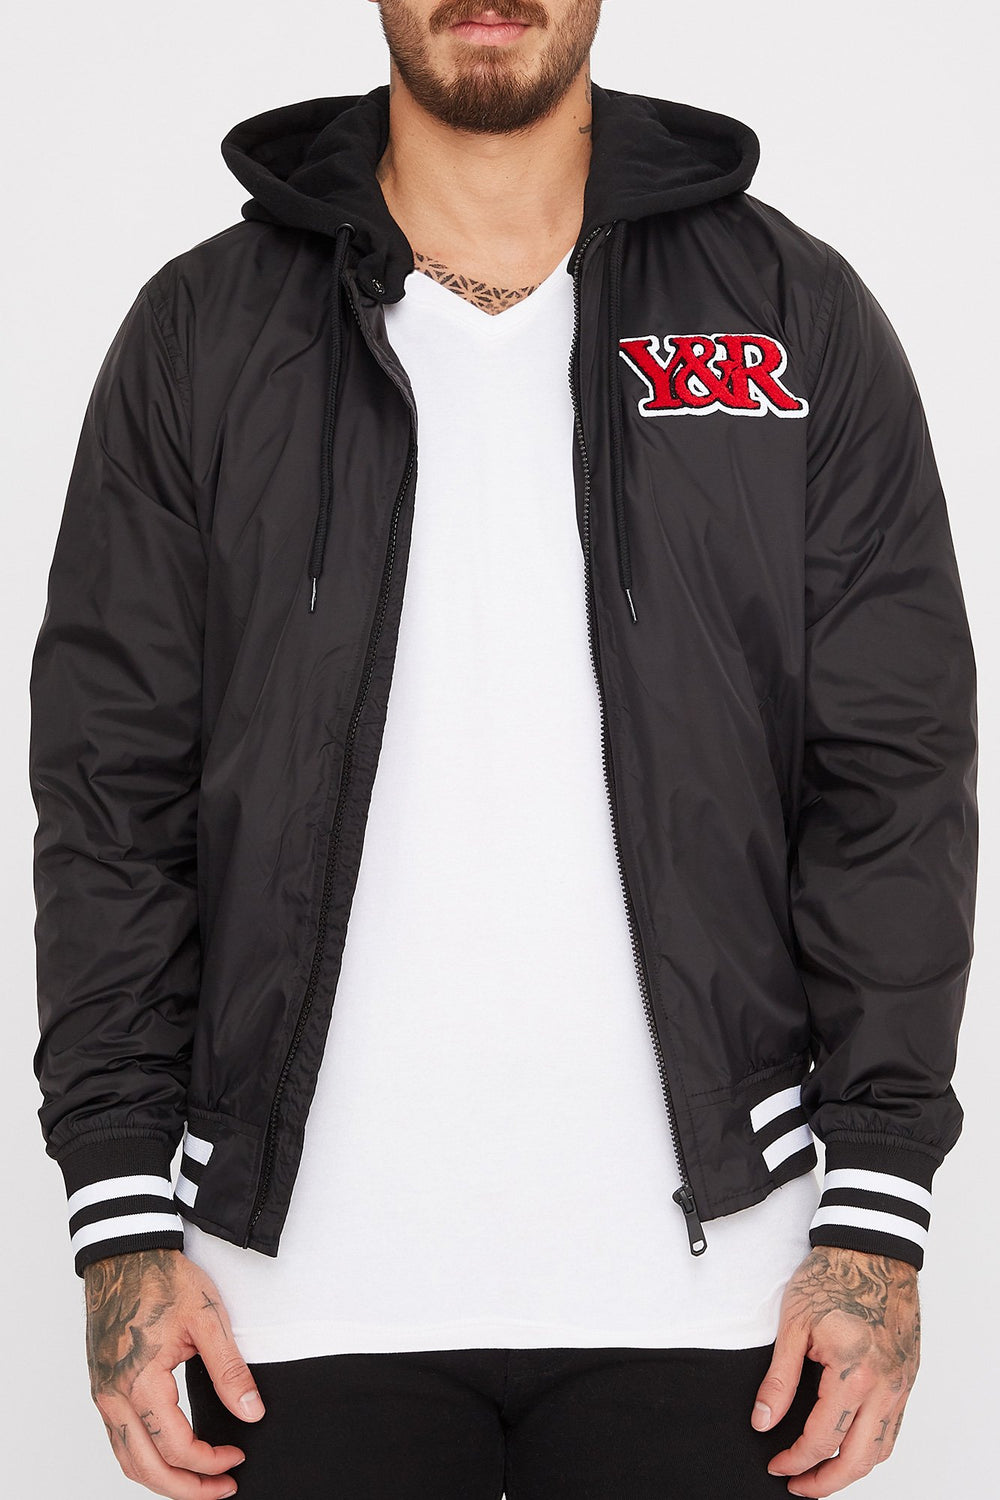 Veste Homme avec Patch Young & Reckless Noir